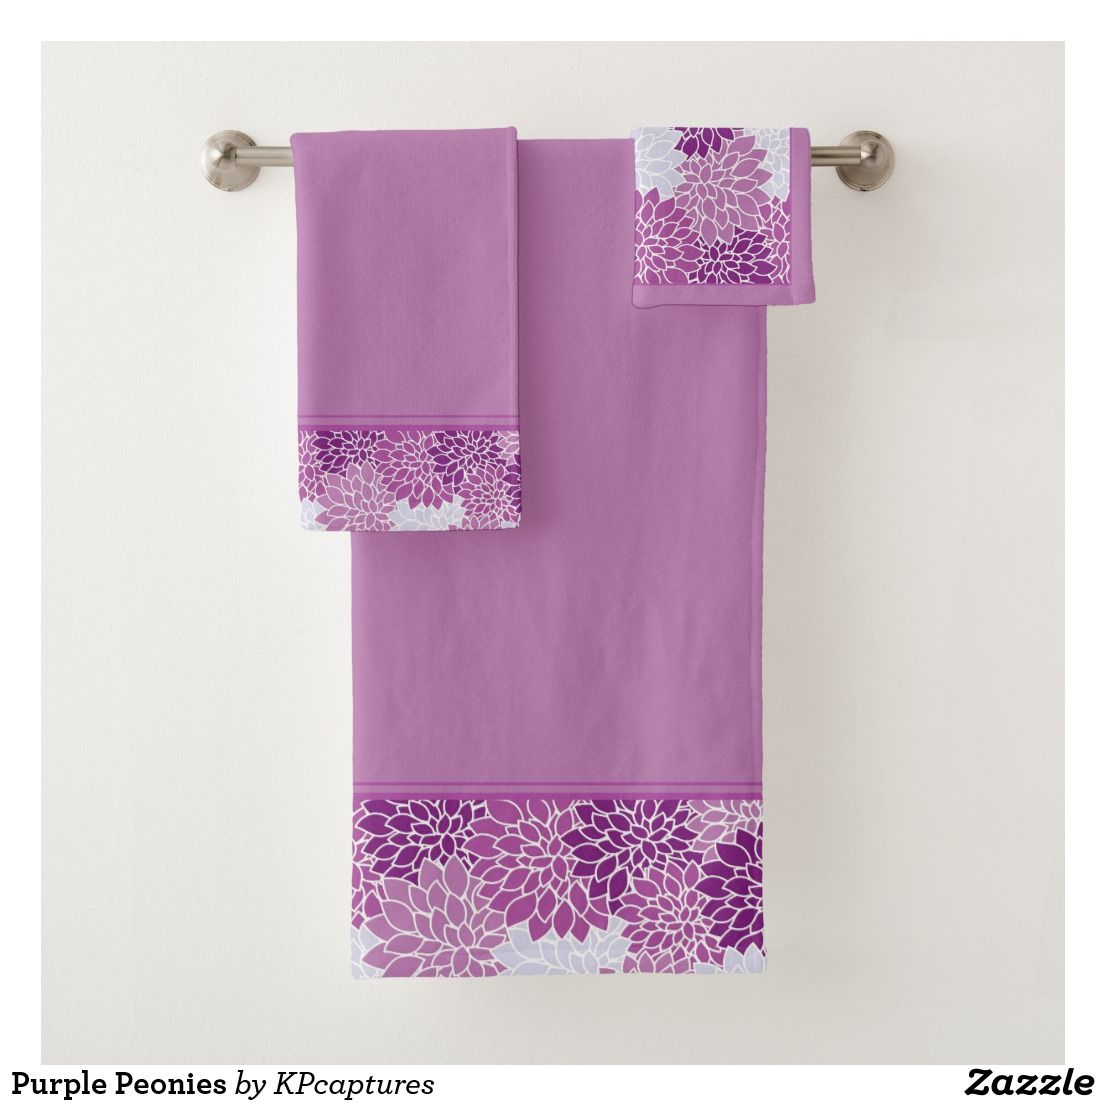 Purple Peonies Bath Towel Set Zazzle Com Towel Set Bath Towel Sets Purple Peonies